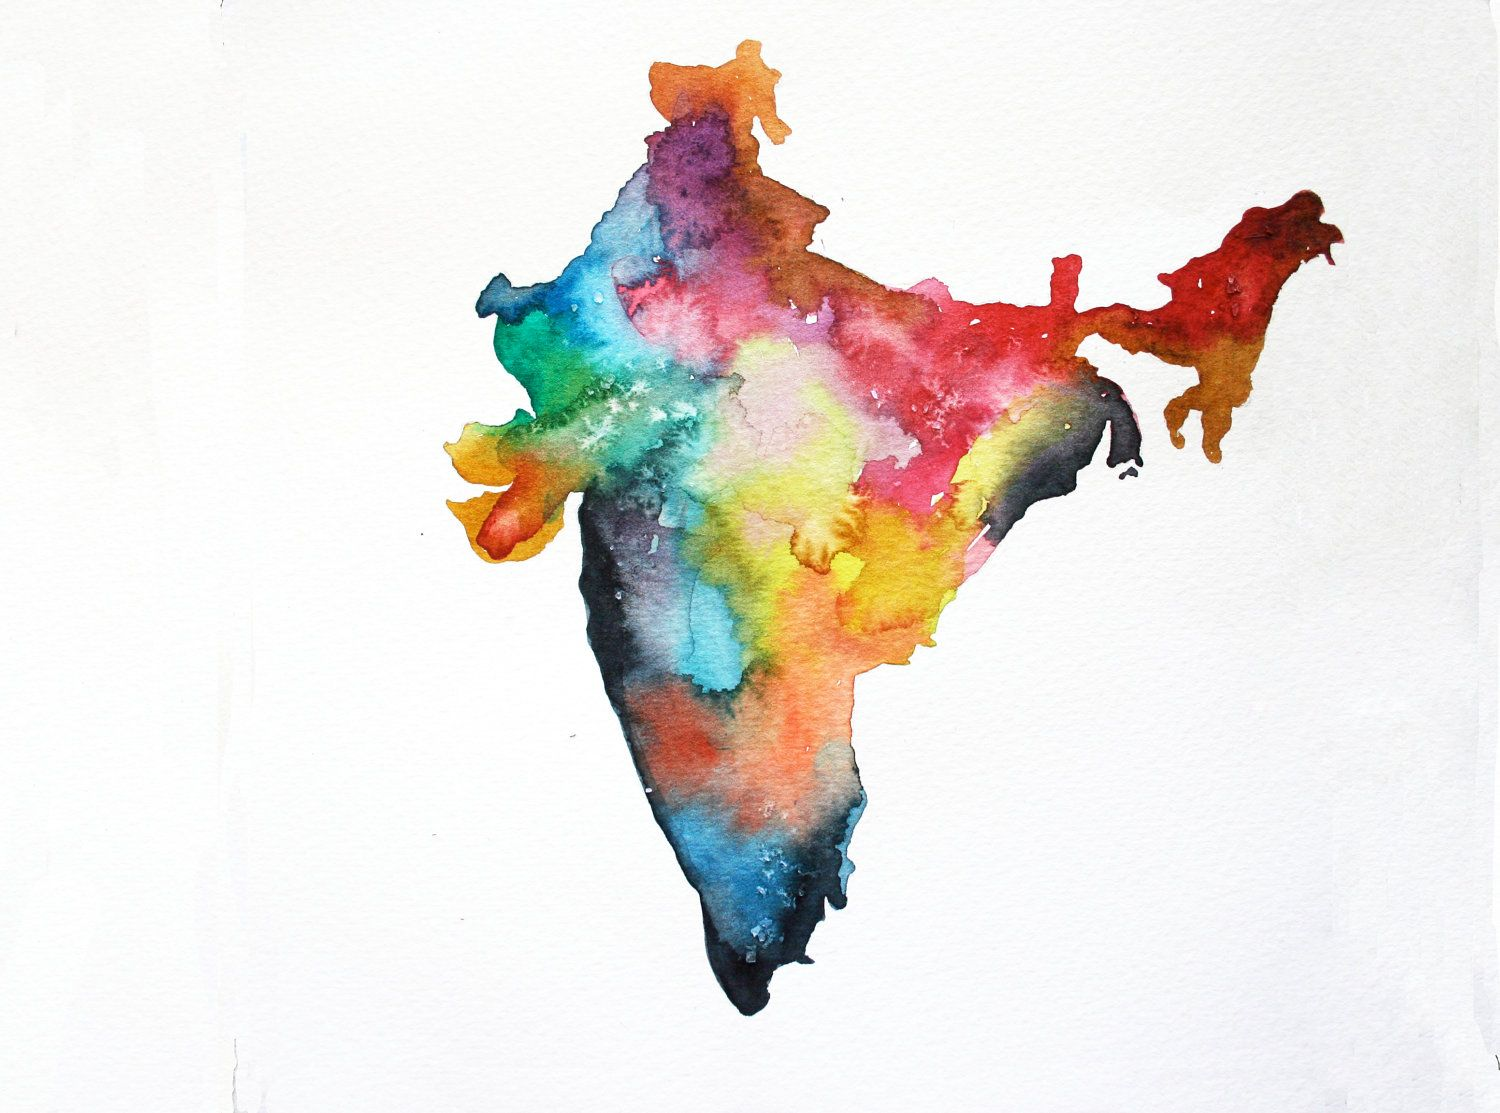 India Map Print 5 X 7 Watercolor Painting Colorful Watercolor